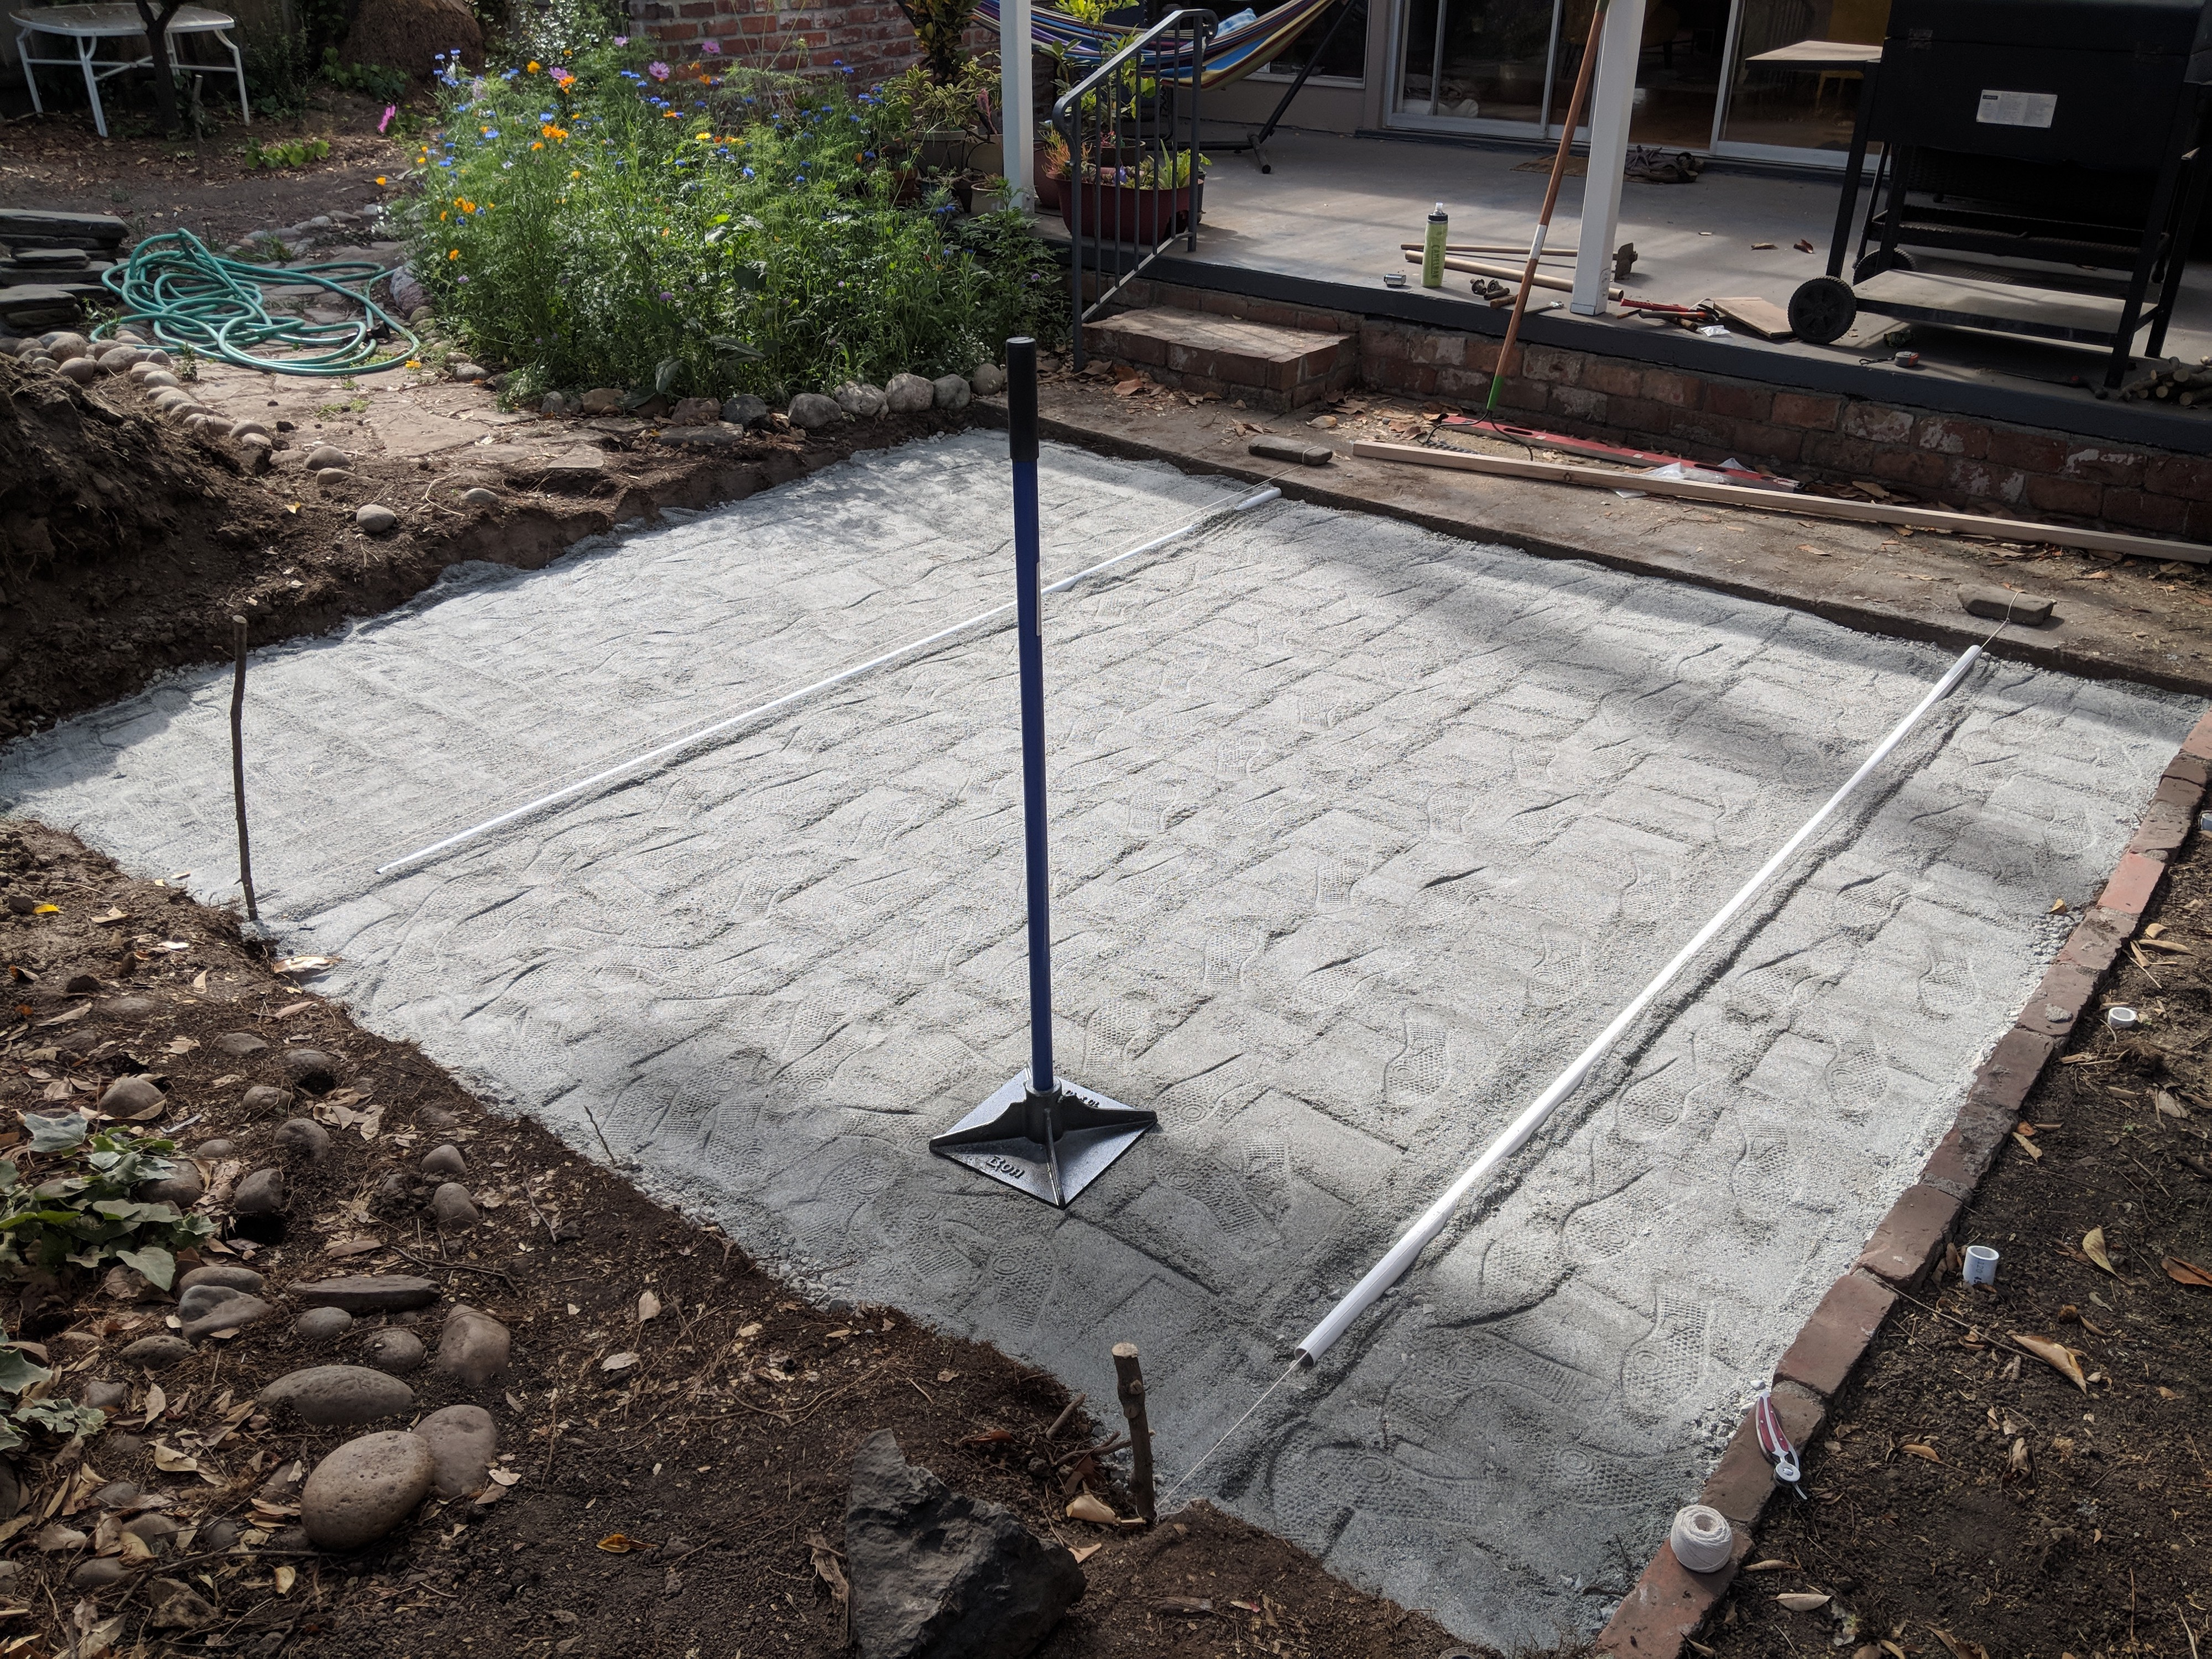 amateur hour build your own patio in a